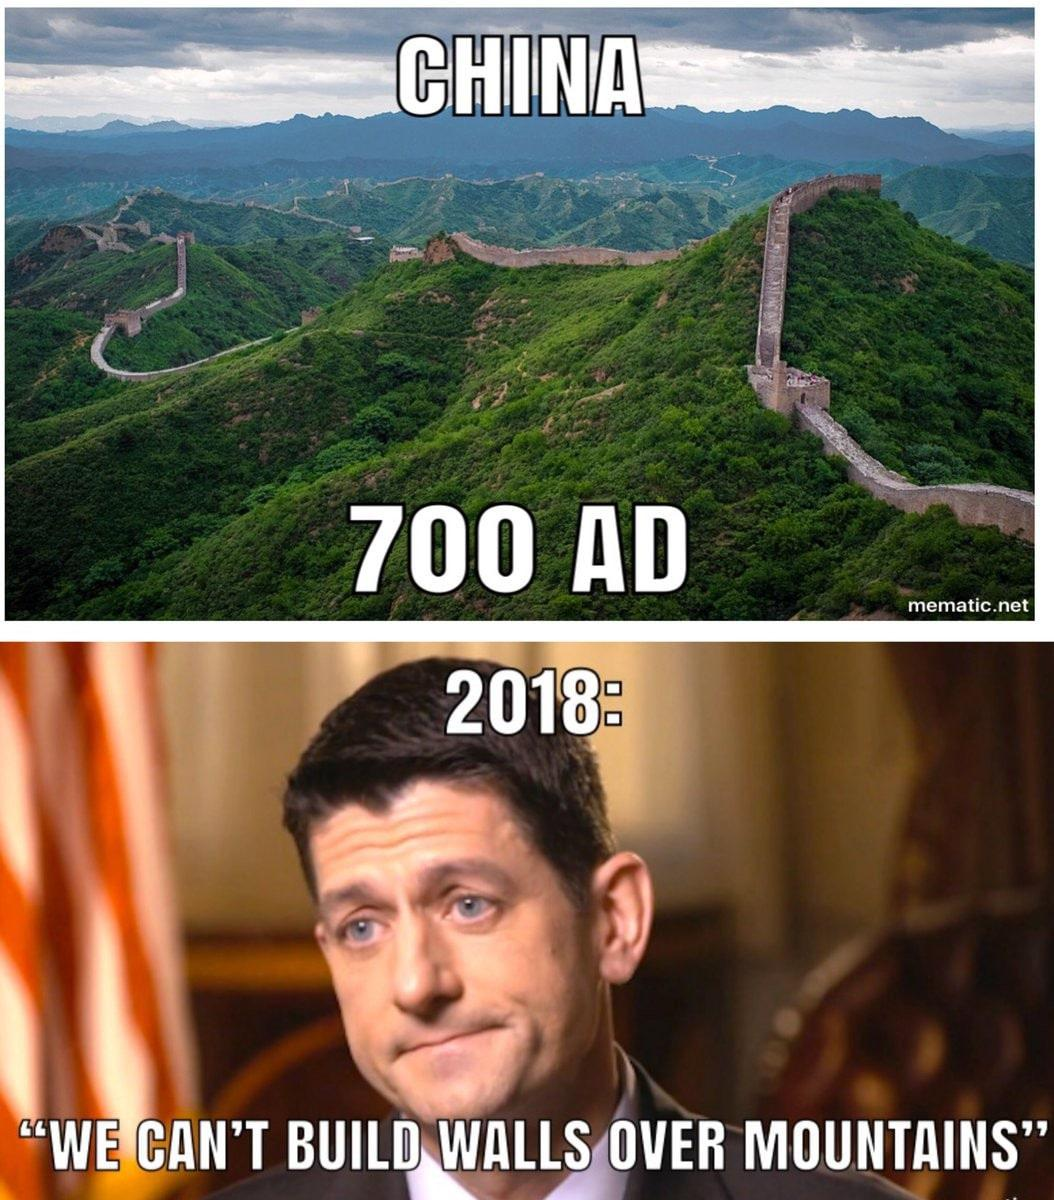 China wall, Paul Ryan